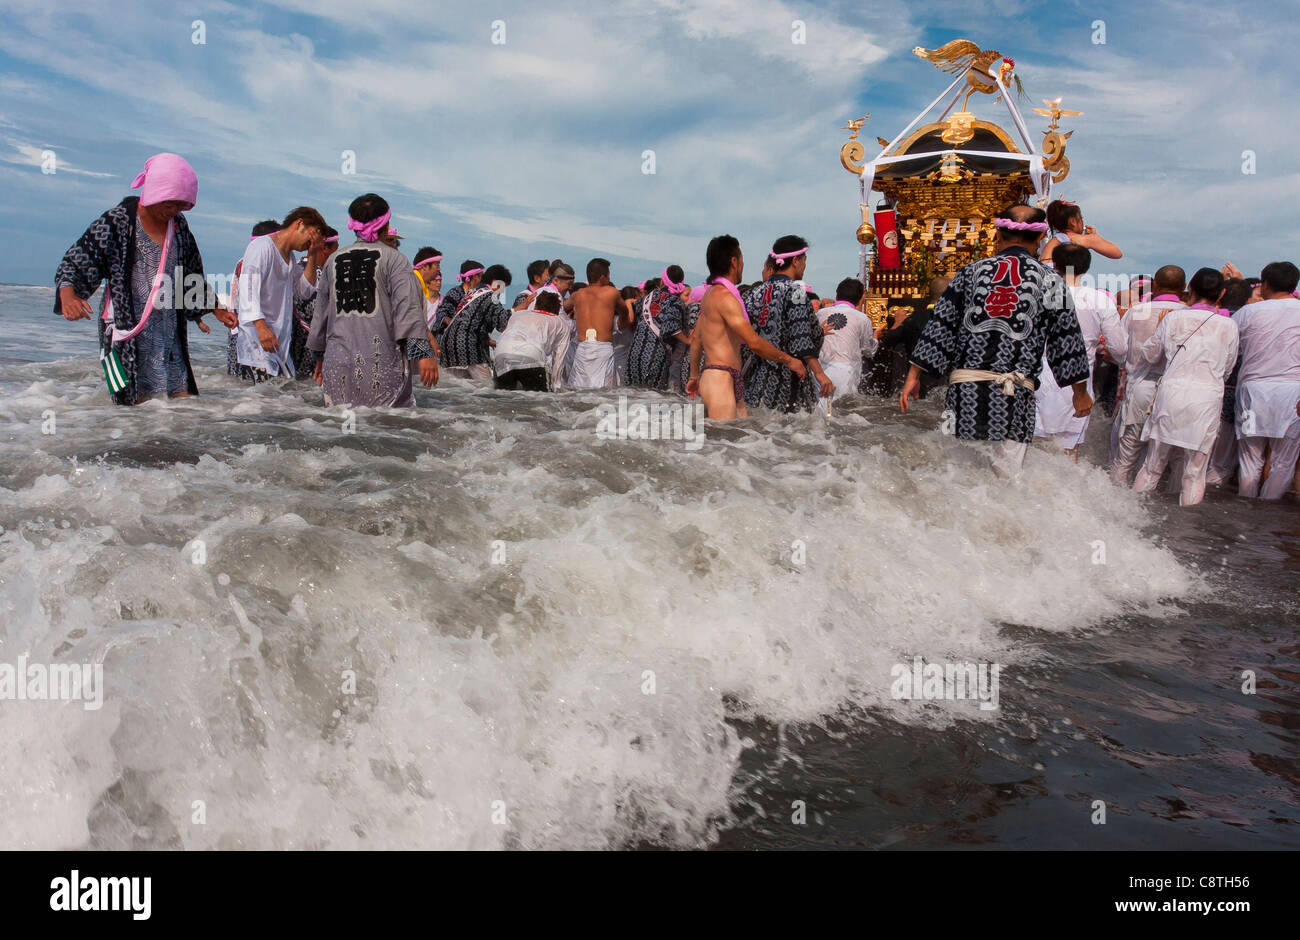 Mikoshi are carried into the sea during the Hamaorisai Matsuri that takes place on Southern Beach in Chigasaki, - Stock Image